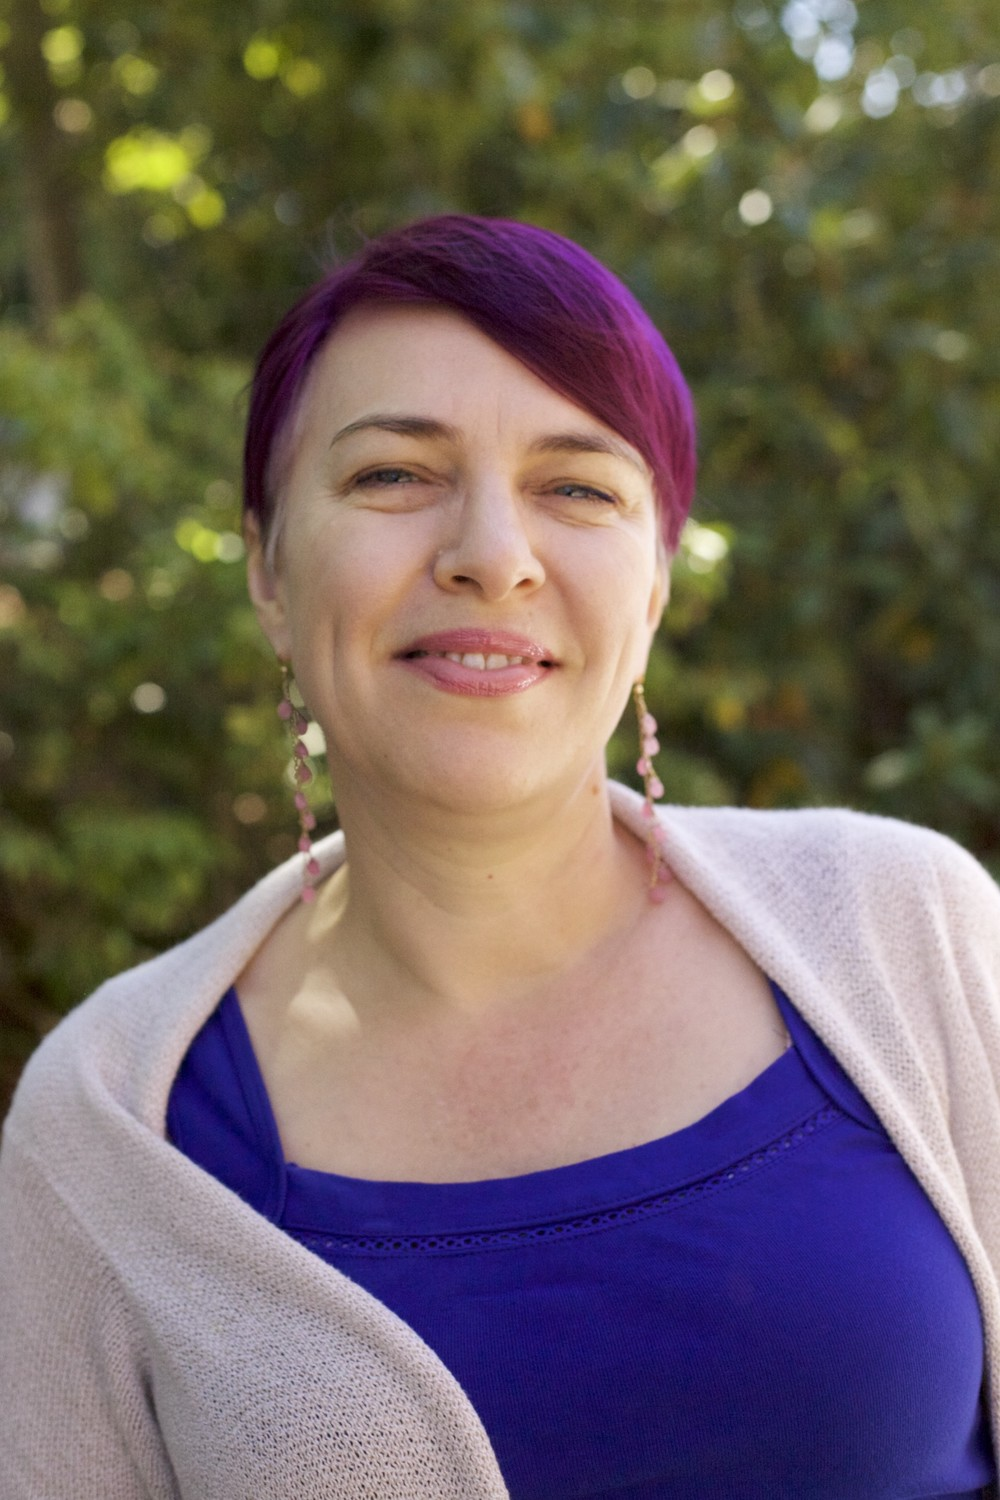 Sierra Sanchez, MA, LMFT, therapist    ∙ Adults (Ages 20 and up) ∙ Codependency   ∙  Trauma  ∙  Relationships  ∙  LGBTQ ,  Sexuality  &  Gender identity  ∙  Holistic Approach to Healing  ∙  Spirituality and Issues of Faith  ∙  Boundary Setting  ∙  Anxiety & Depression  ∙  Men's & Women's Issues  ∙  Recovery and Addiction  ∙  Adult Children of Alcoholics